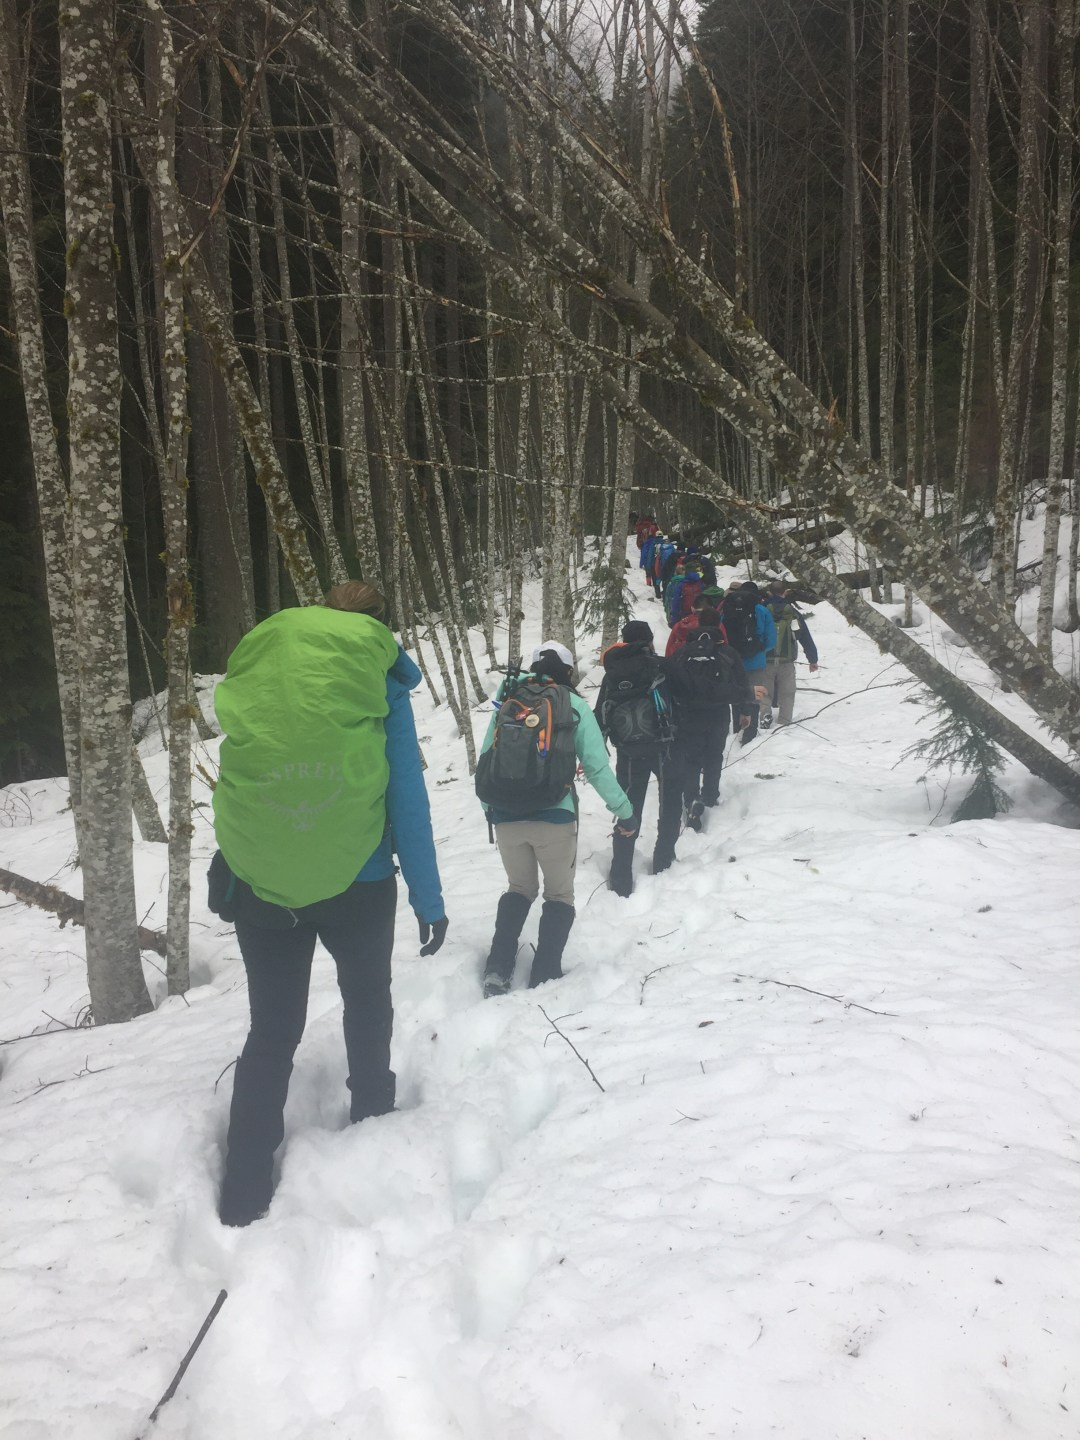 A line of hikers walking in the snow to the final navigation test for the Wilderness First Aid class